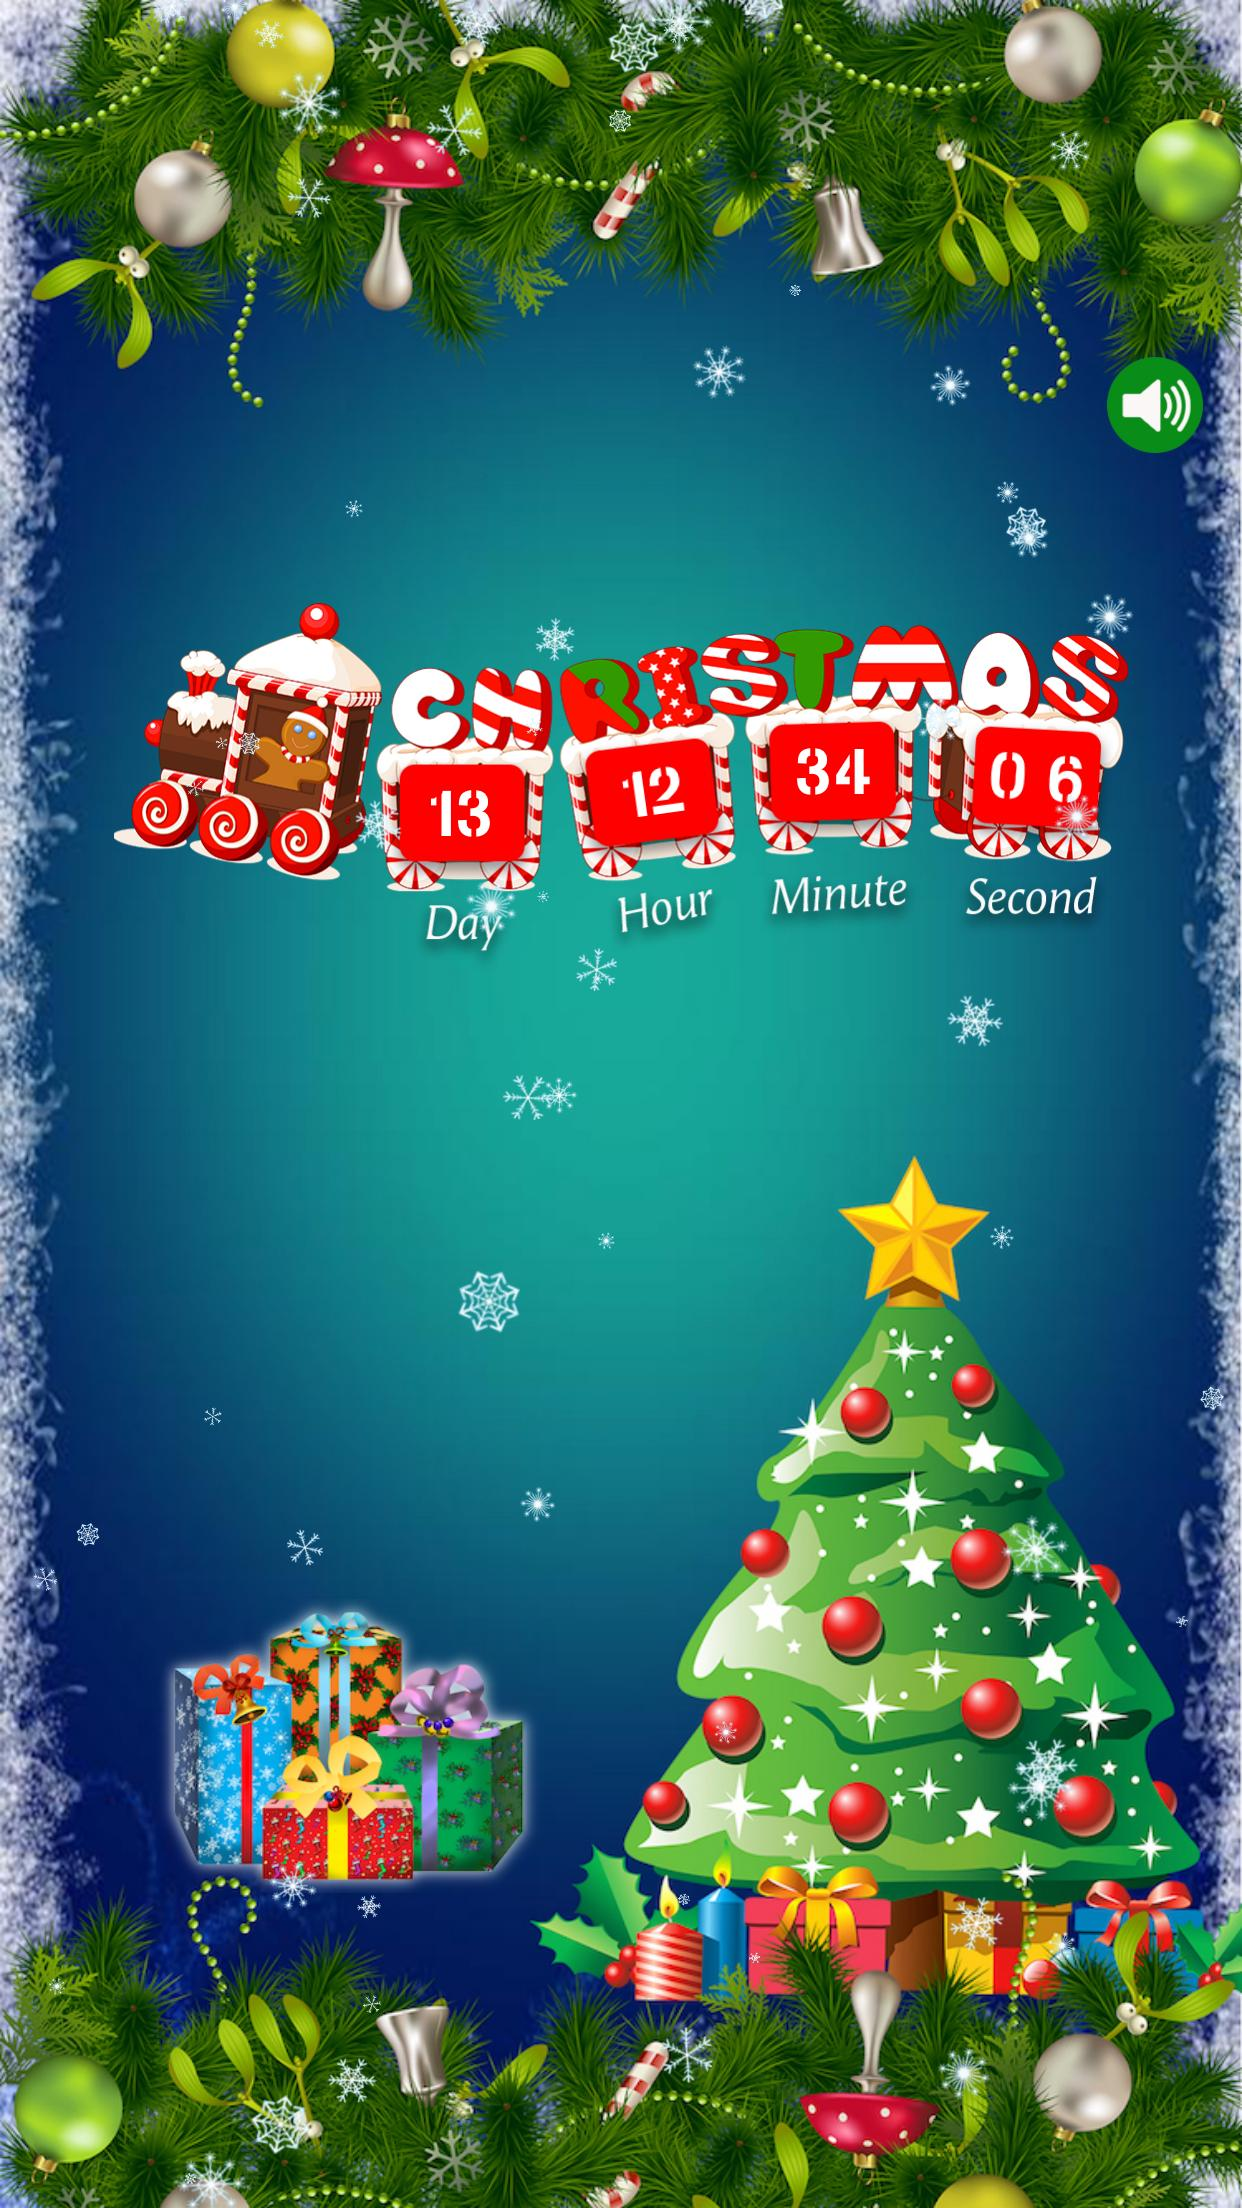 Christmas 2020.Christmas Countdown 2020 For Android Apk Download